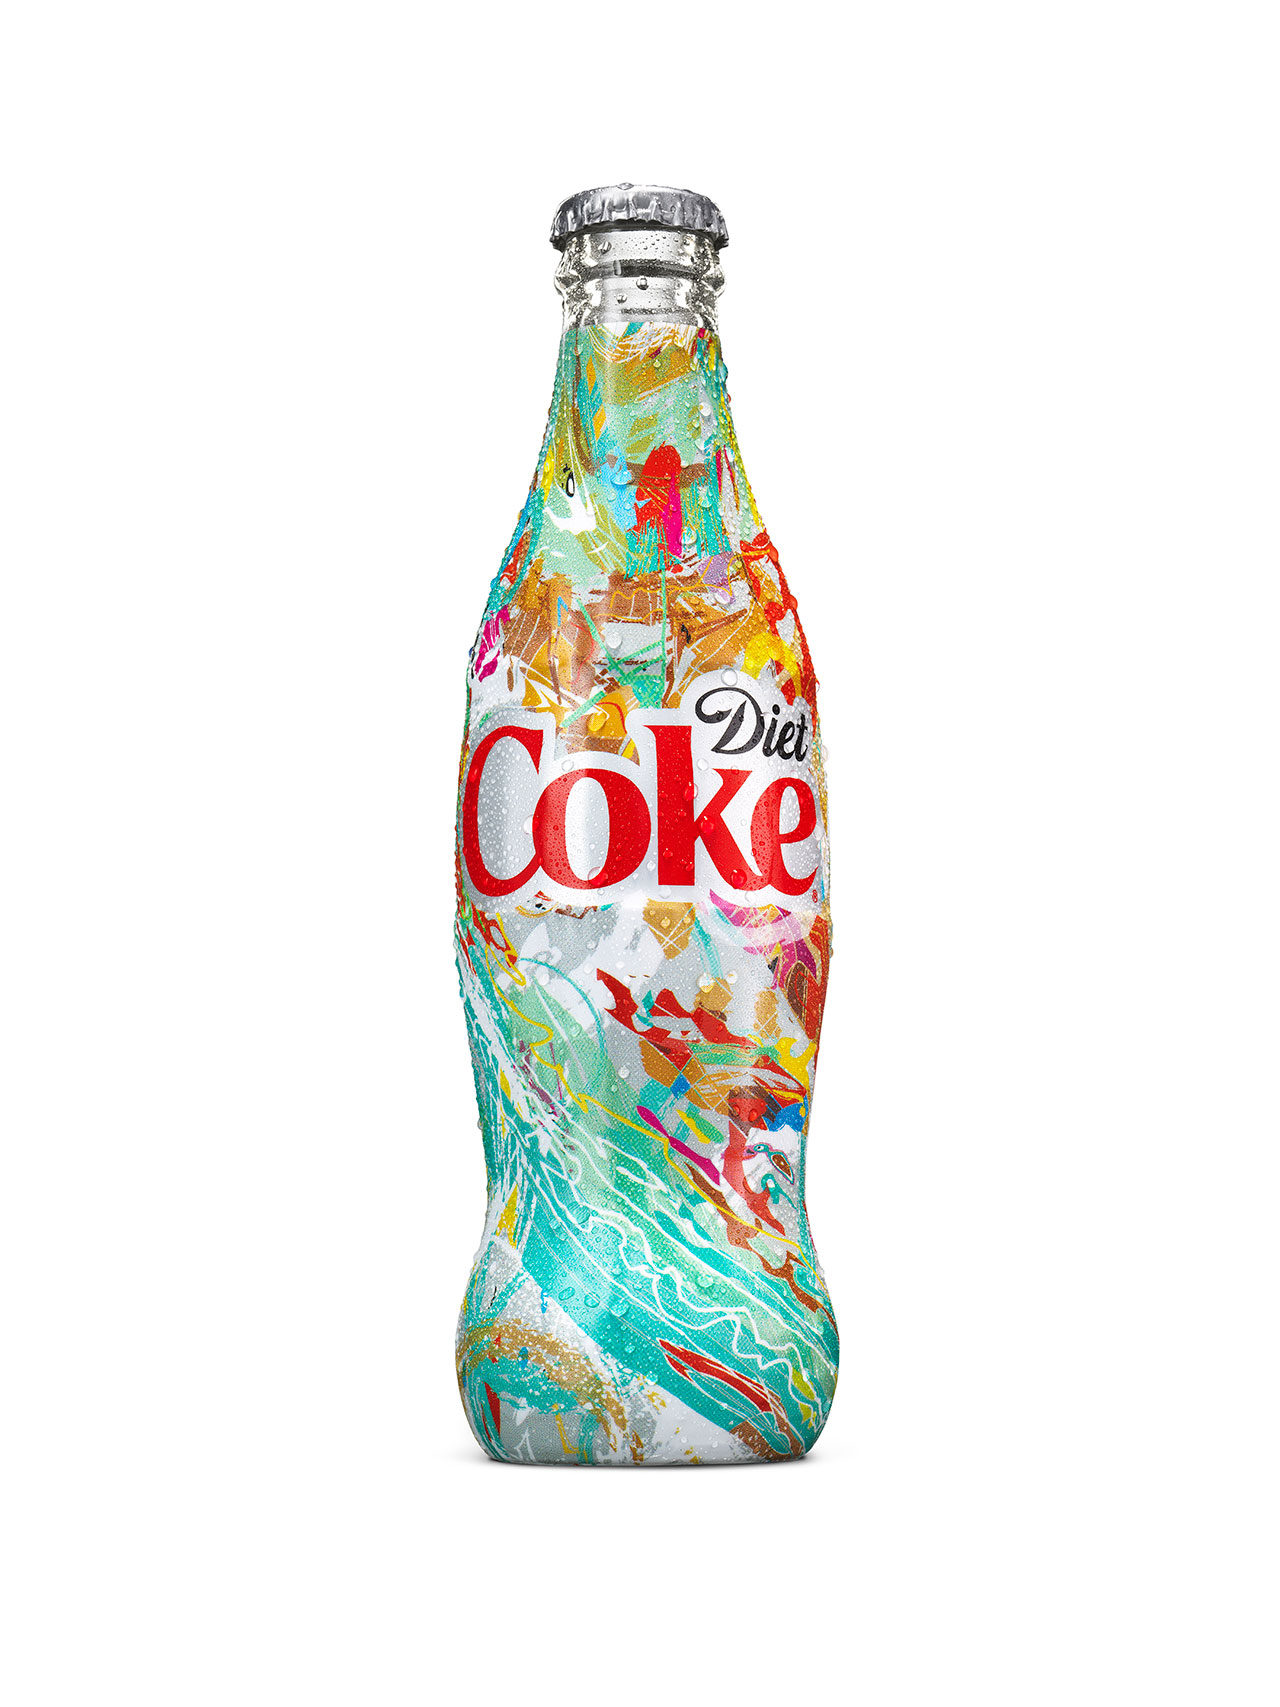 This is a photo of Resource Diet Coke Bottle Label